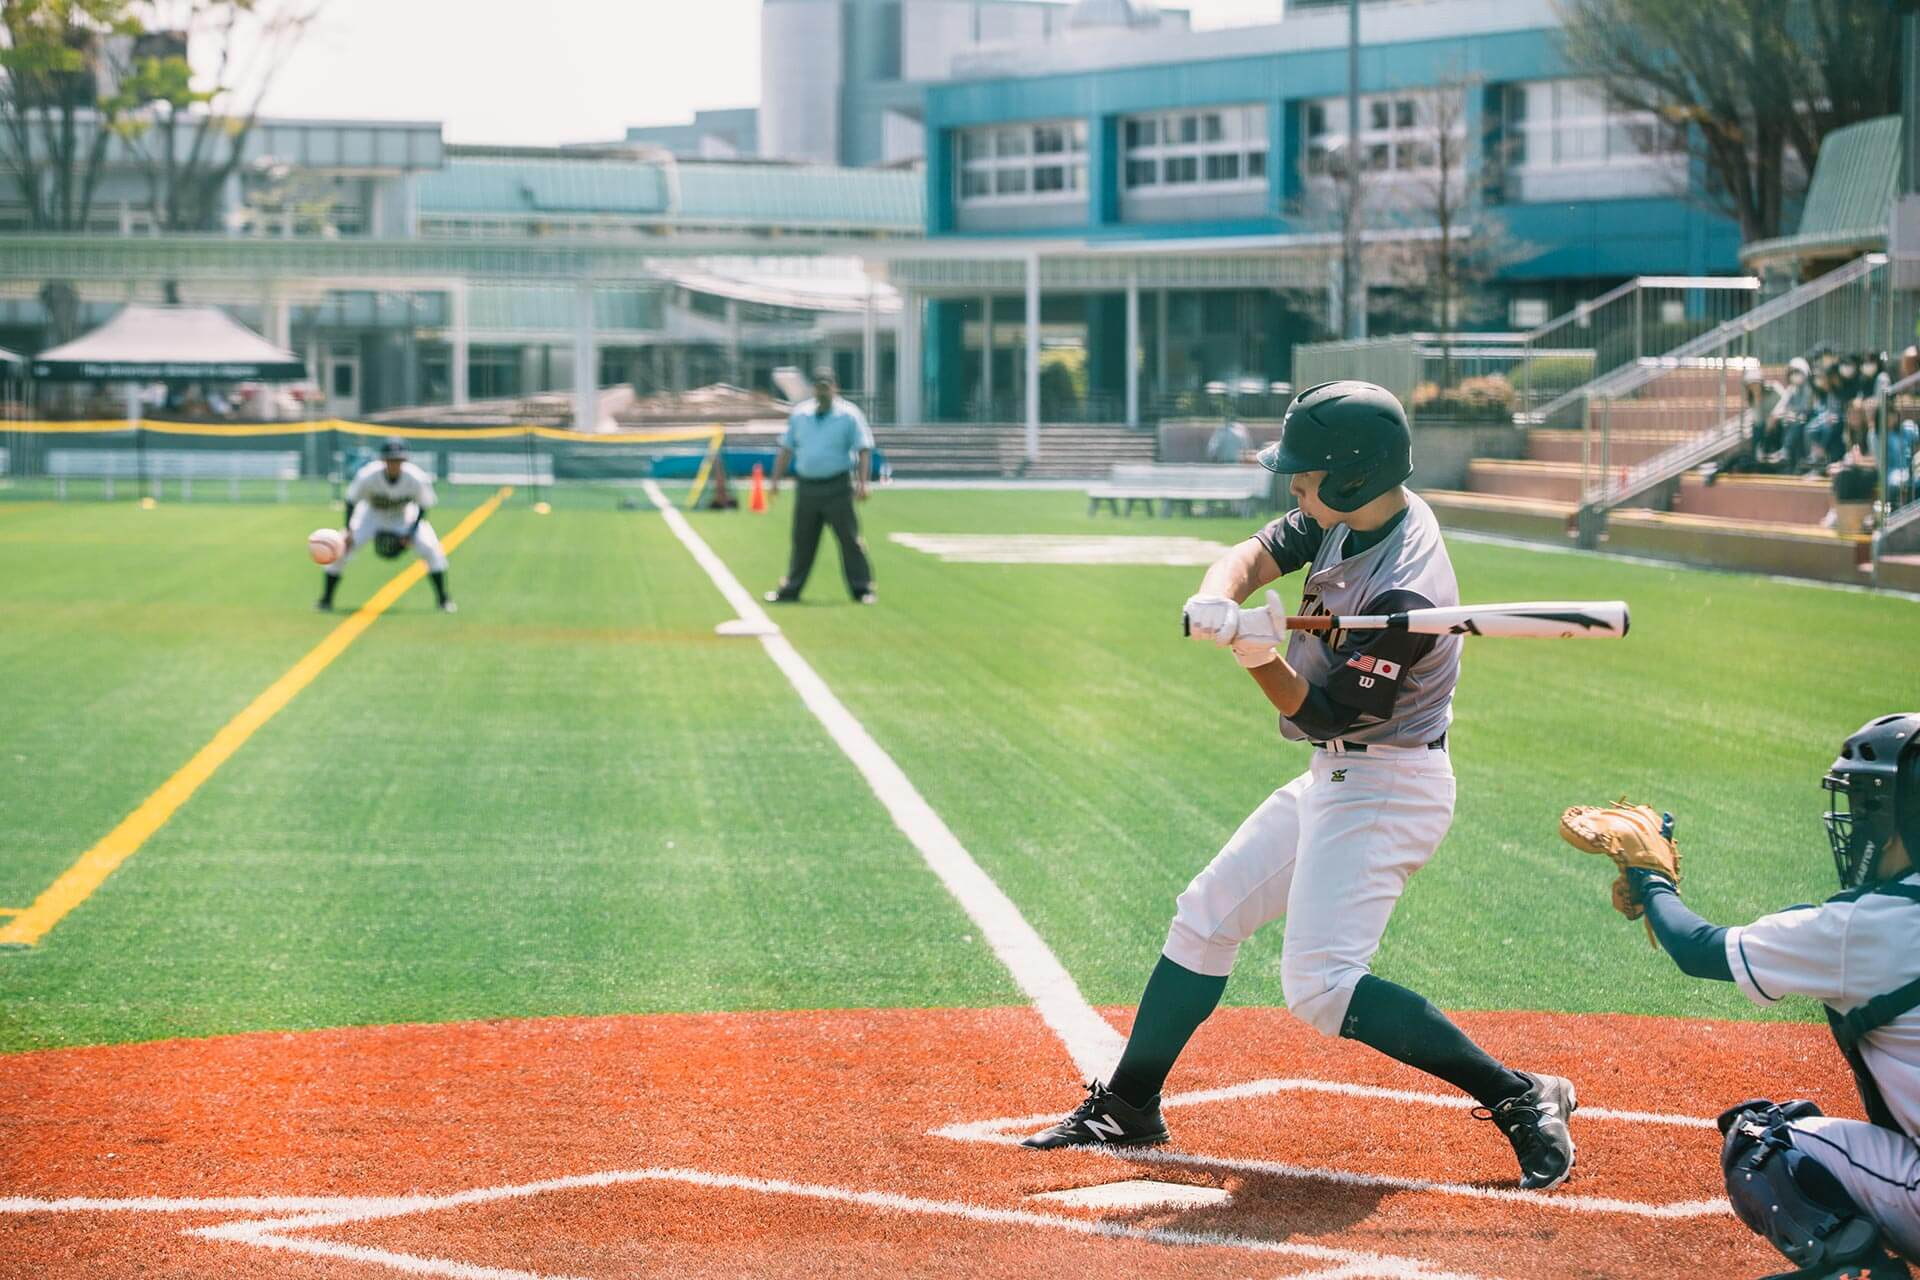 High School Baseball Game on the ASIJ  Field